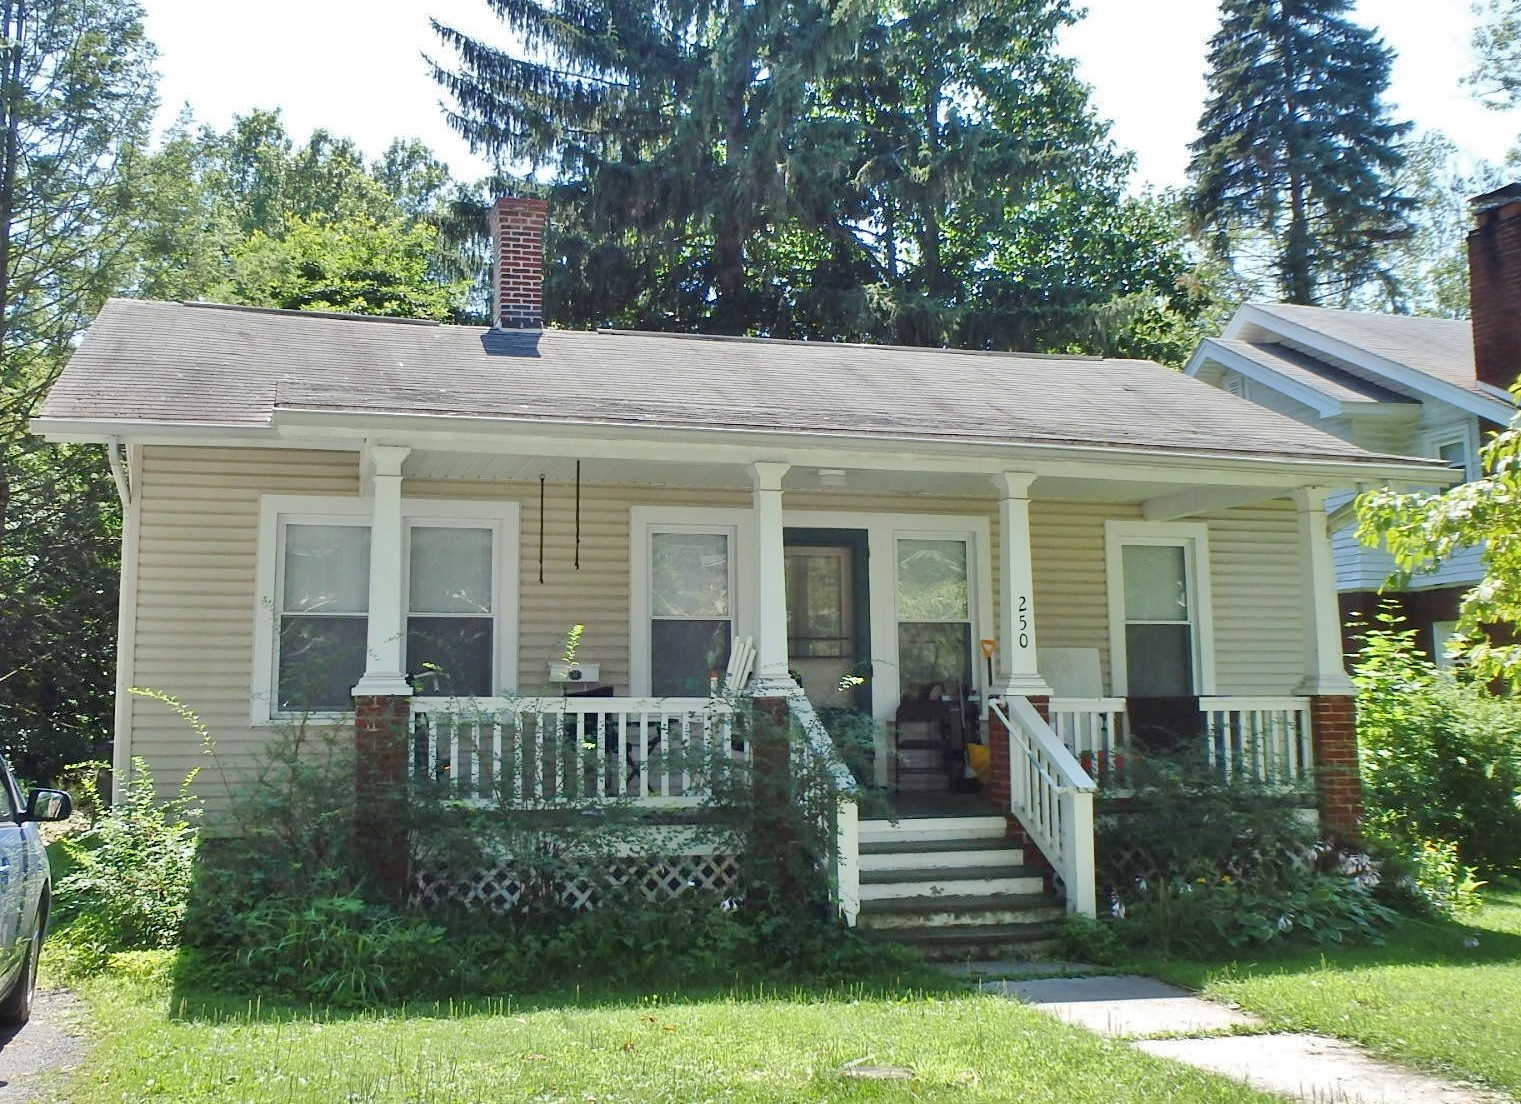 Photo of the 2-bedroom house for rent at 250 S. Barnard Street in State College, PA.